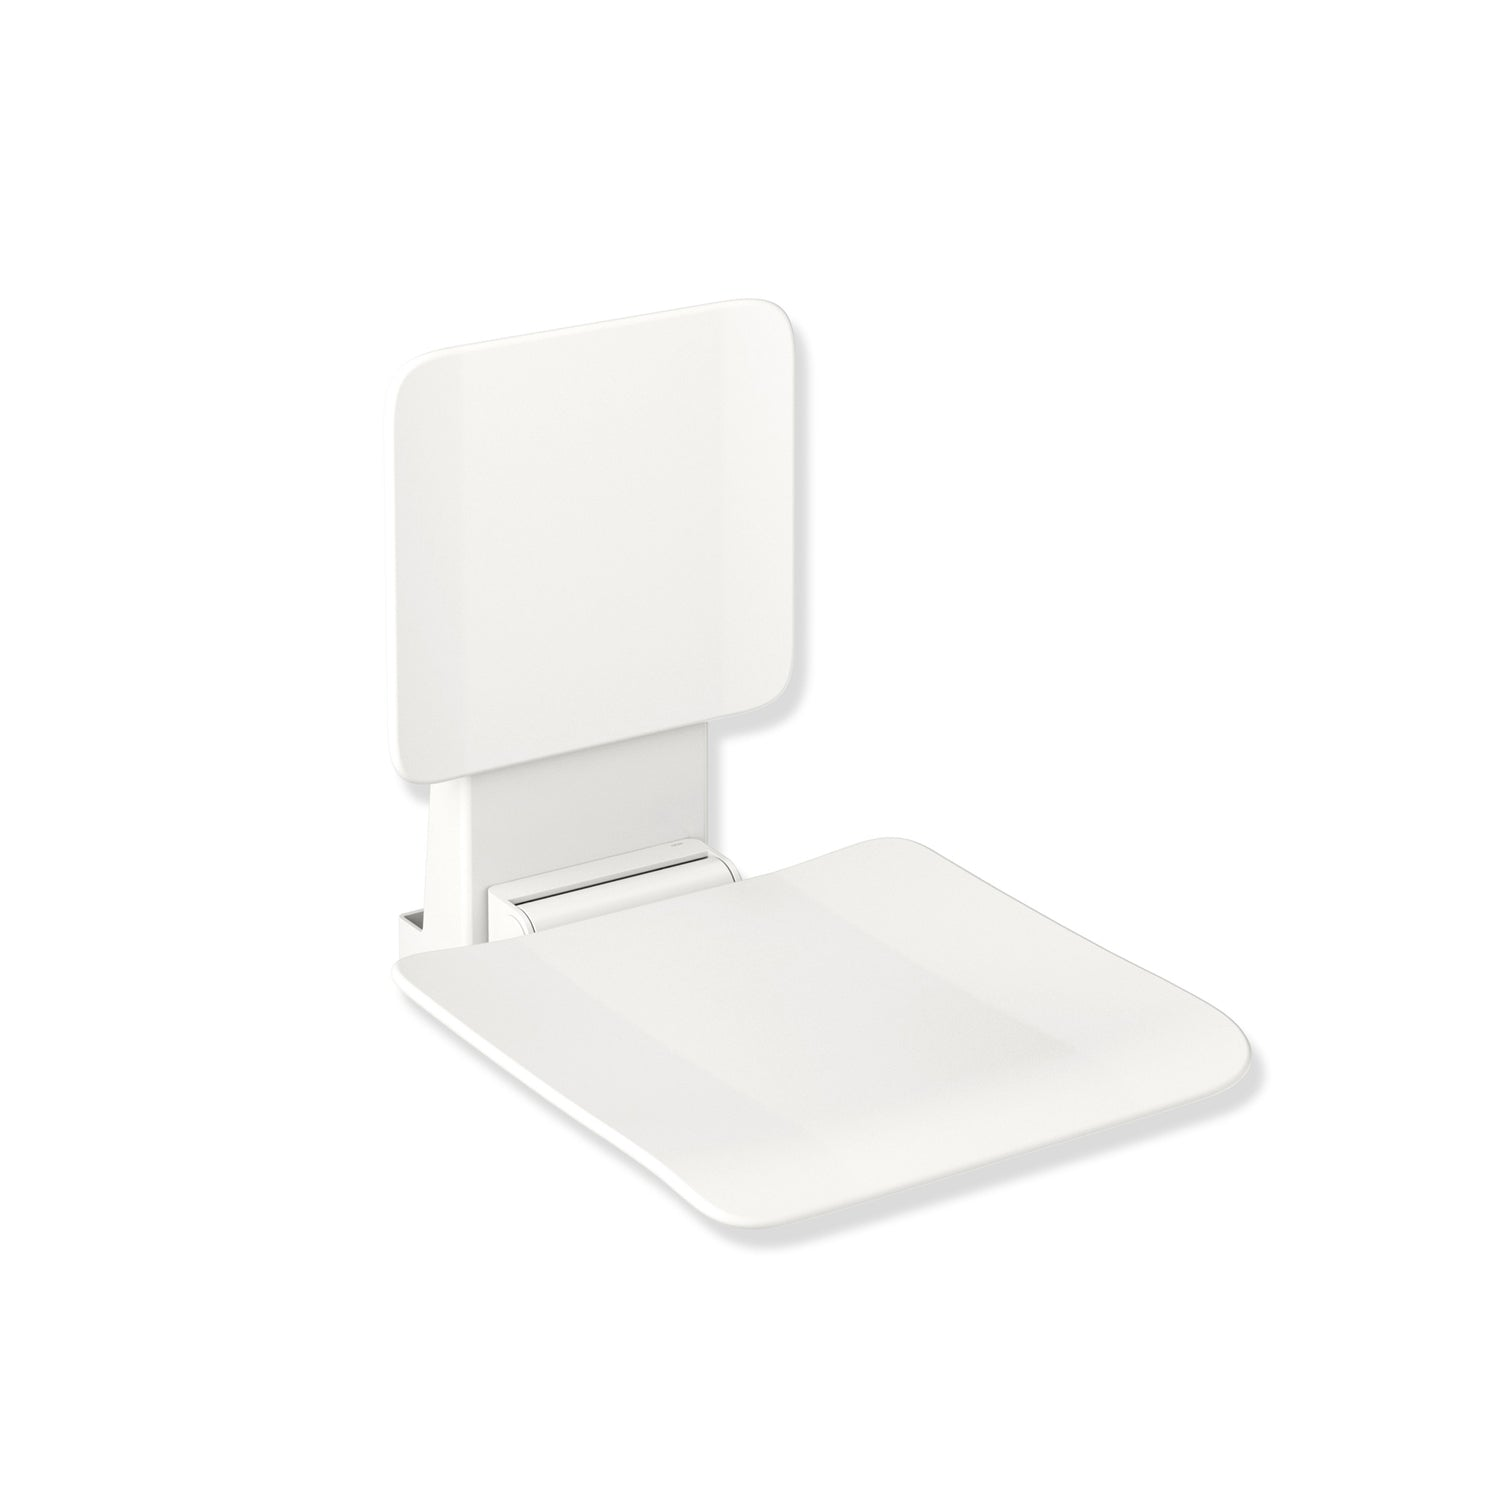 450mm Freestyle Hanging Seat with a backrest and a white finish on a white background